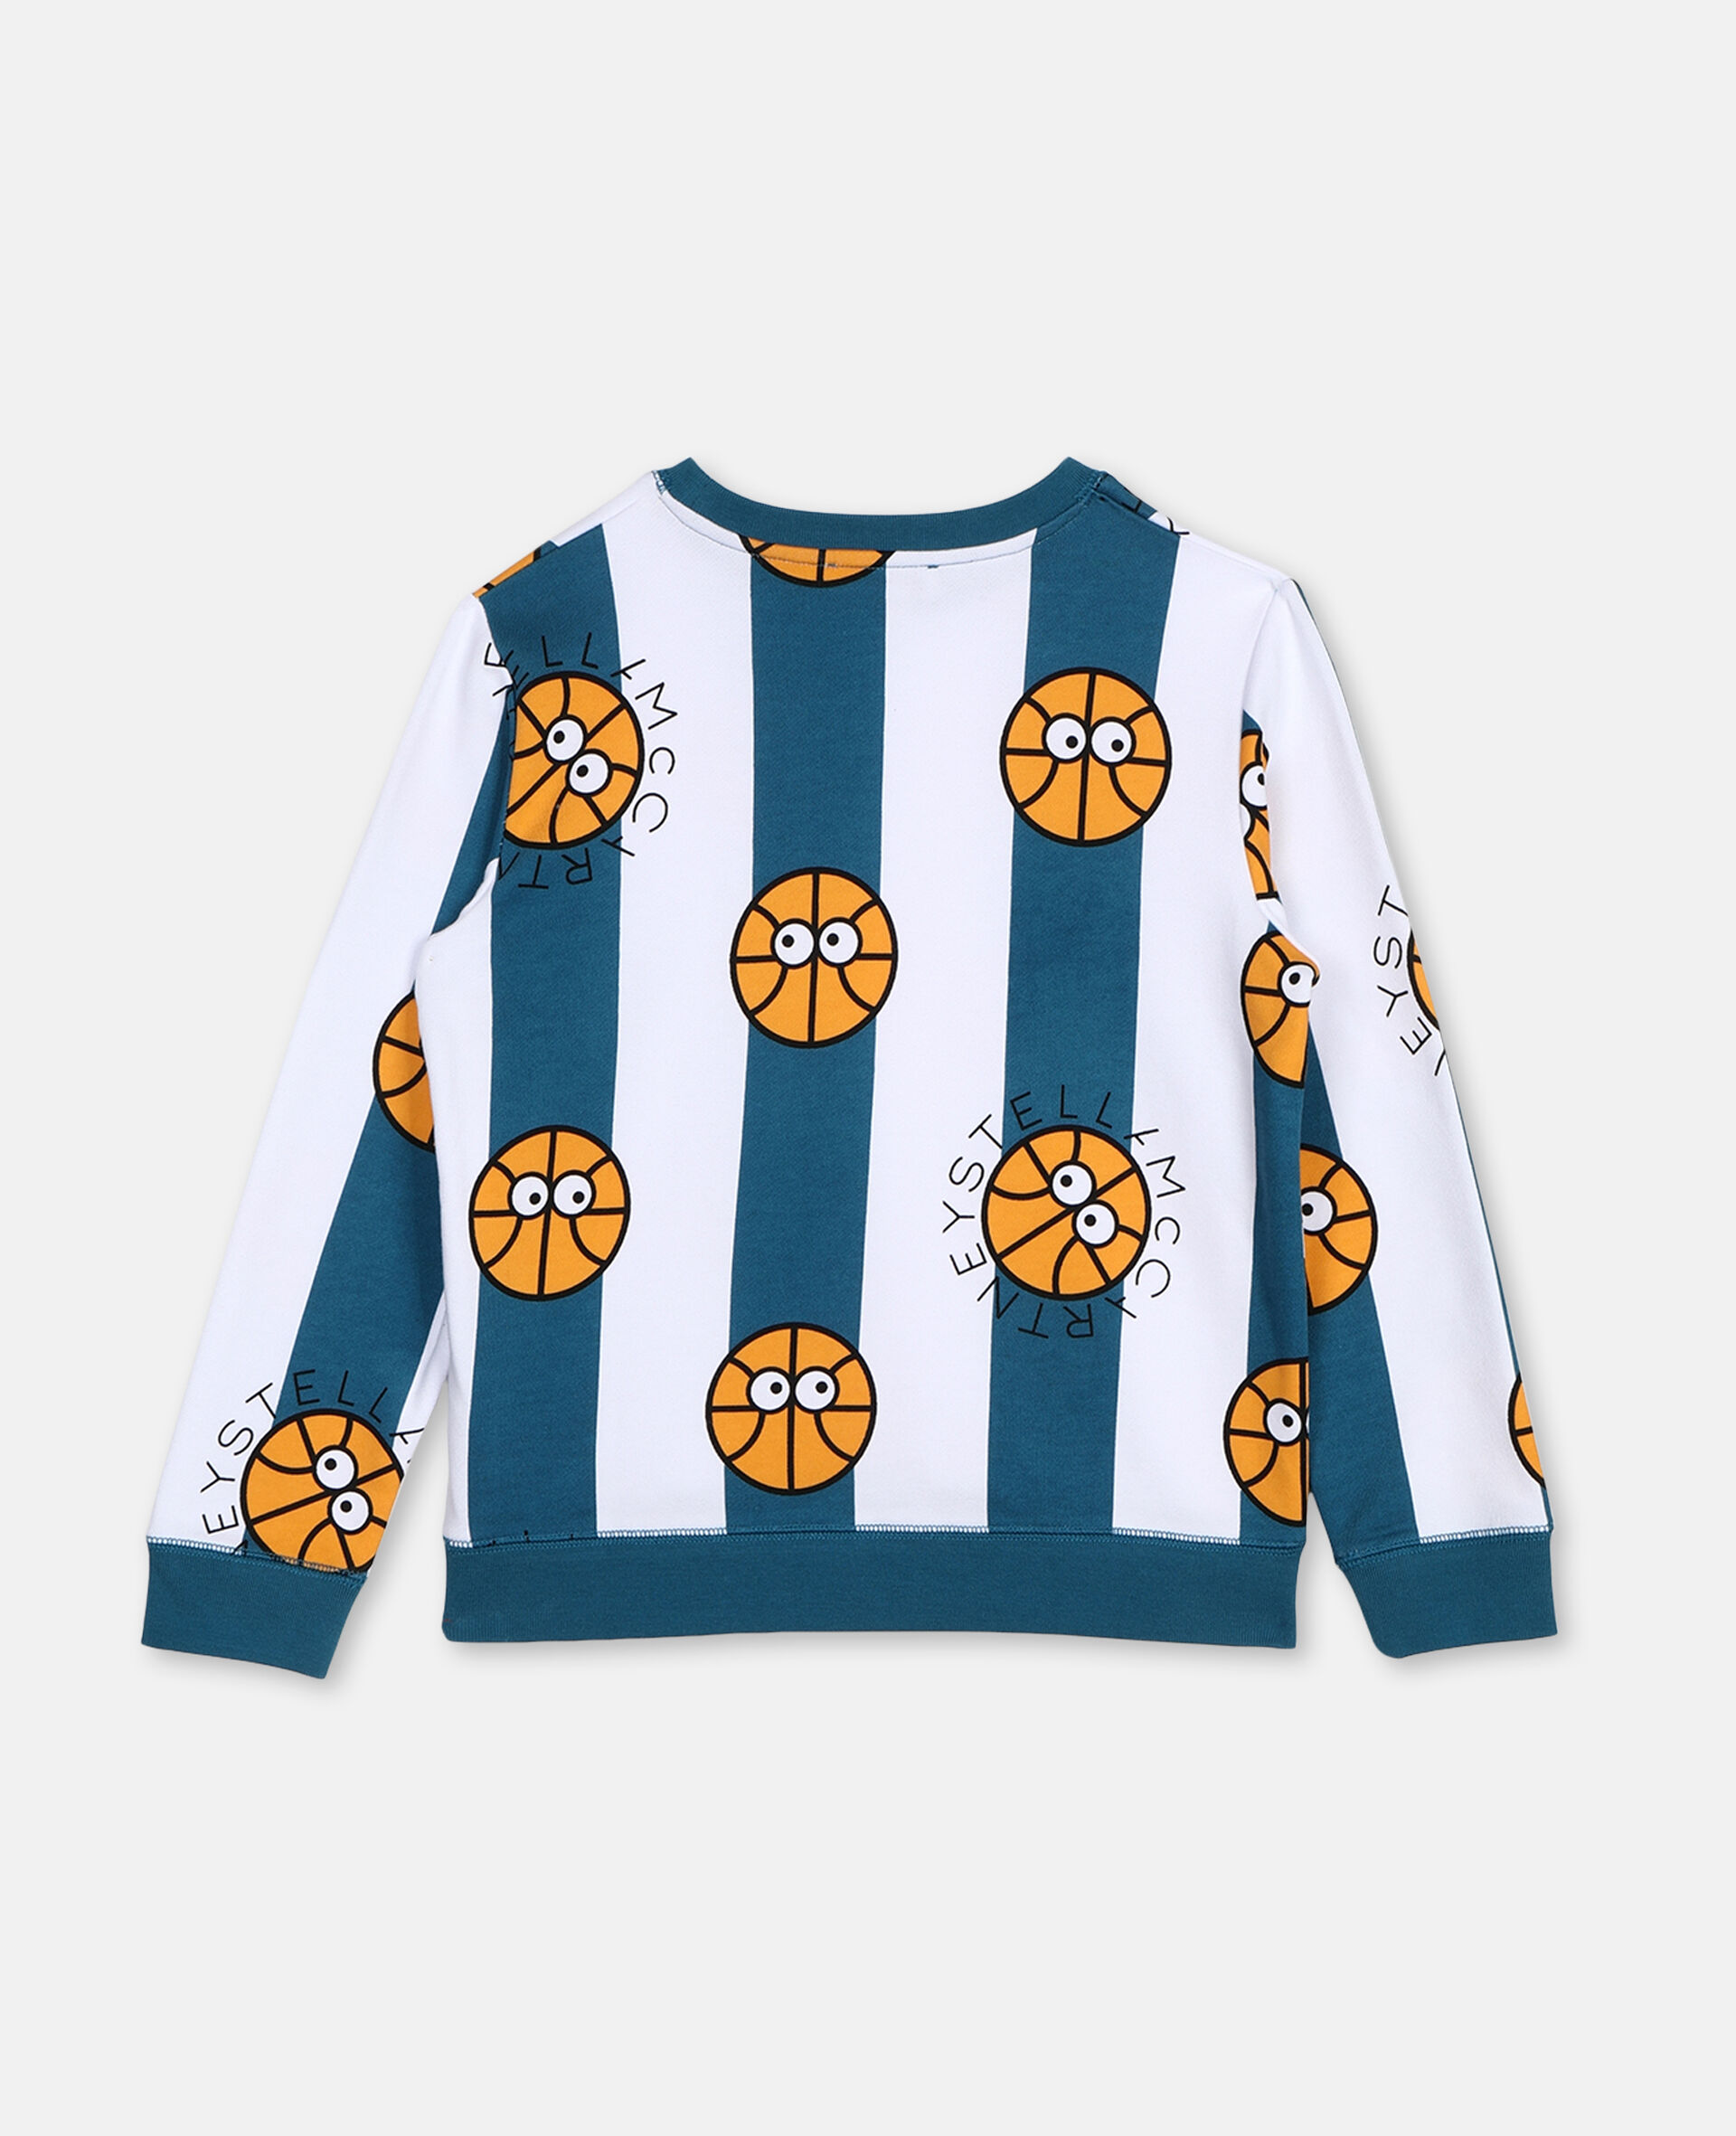 Basketball Cotton Sweatshirt -Multicolour-large image number 3